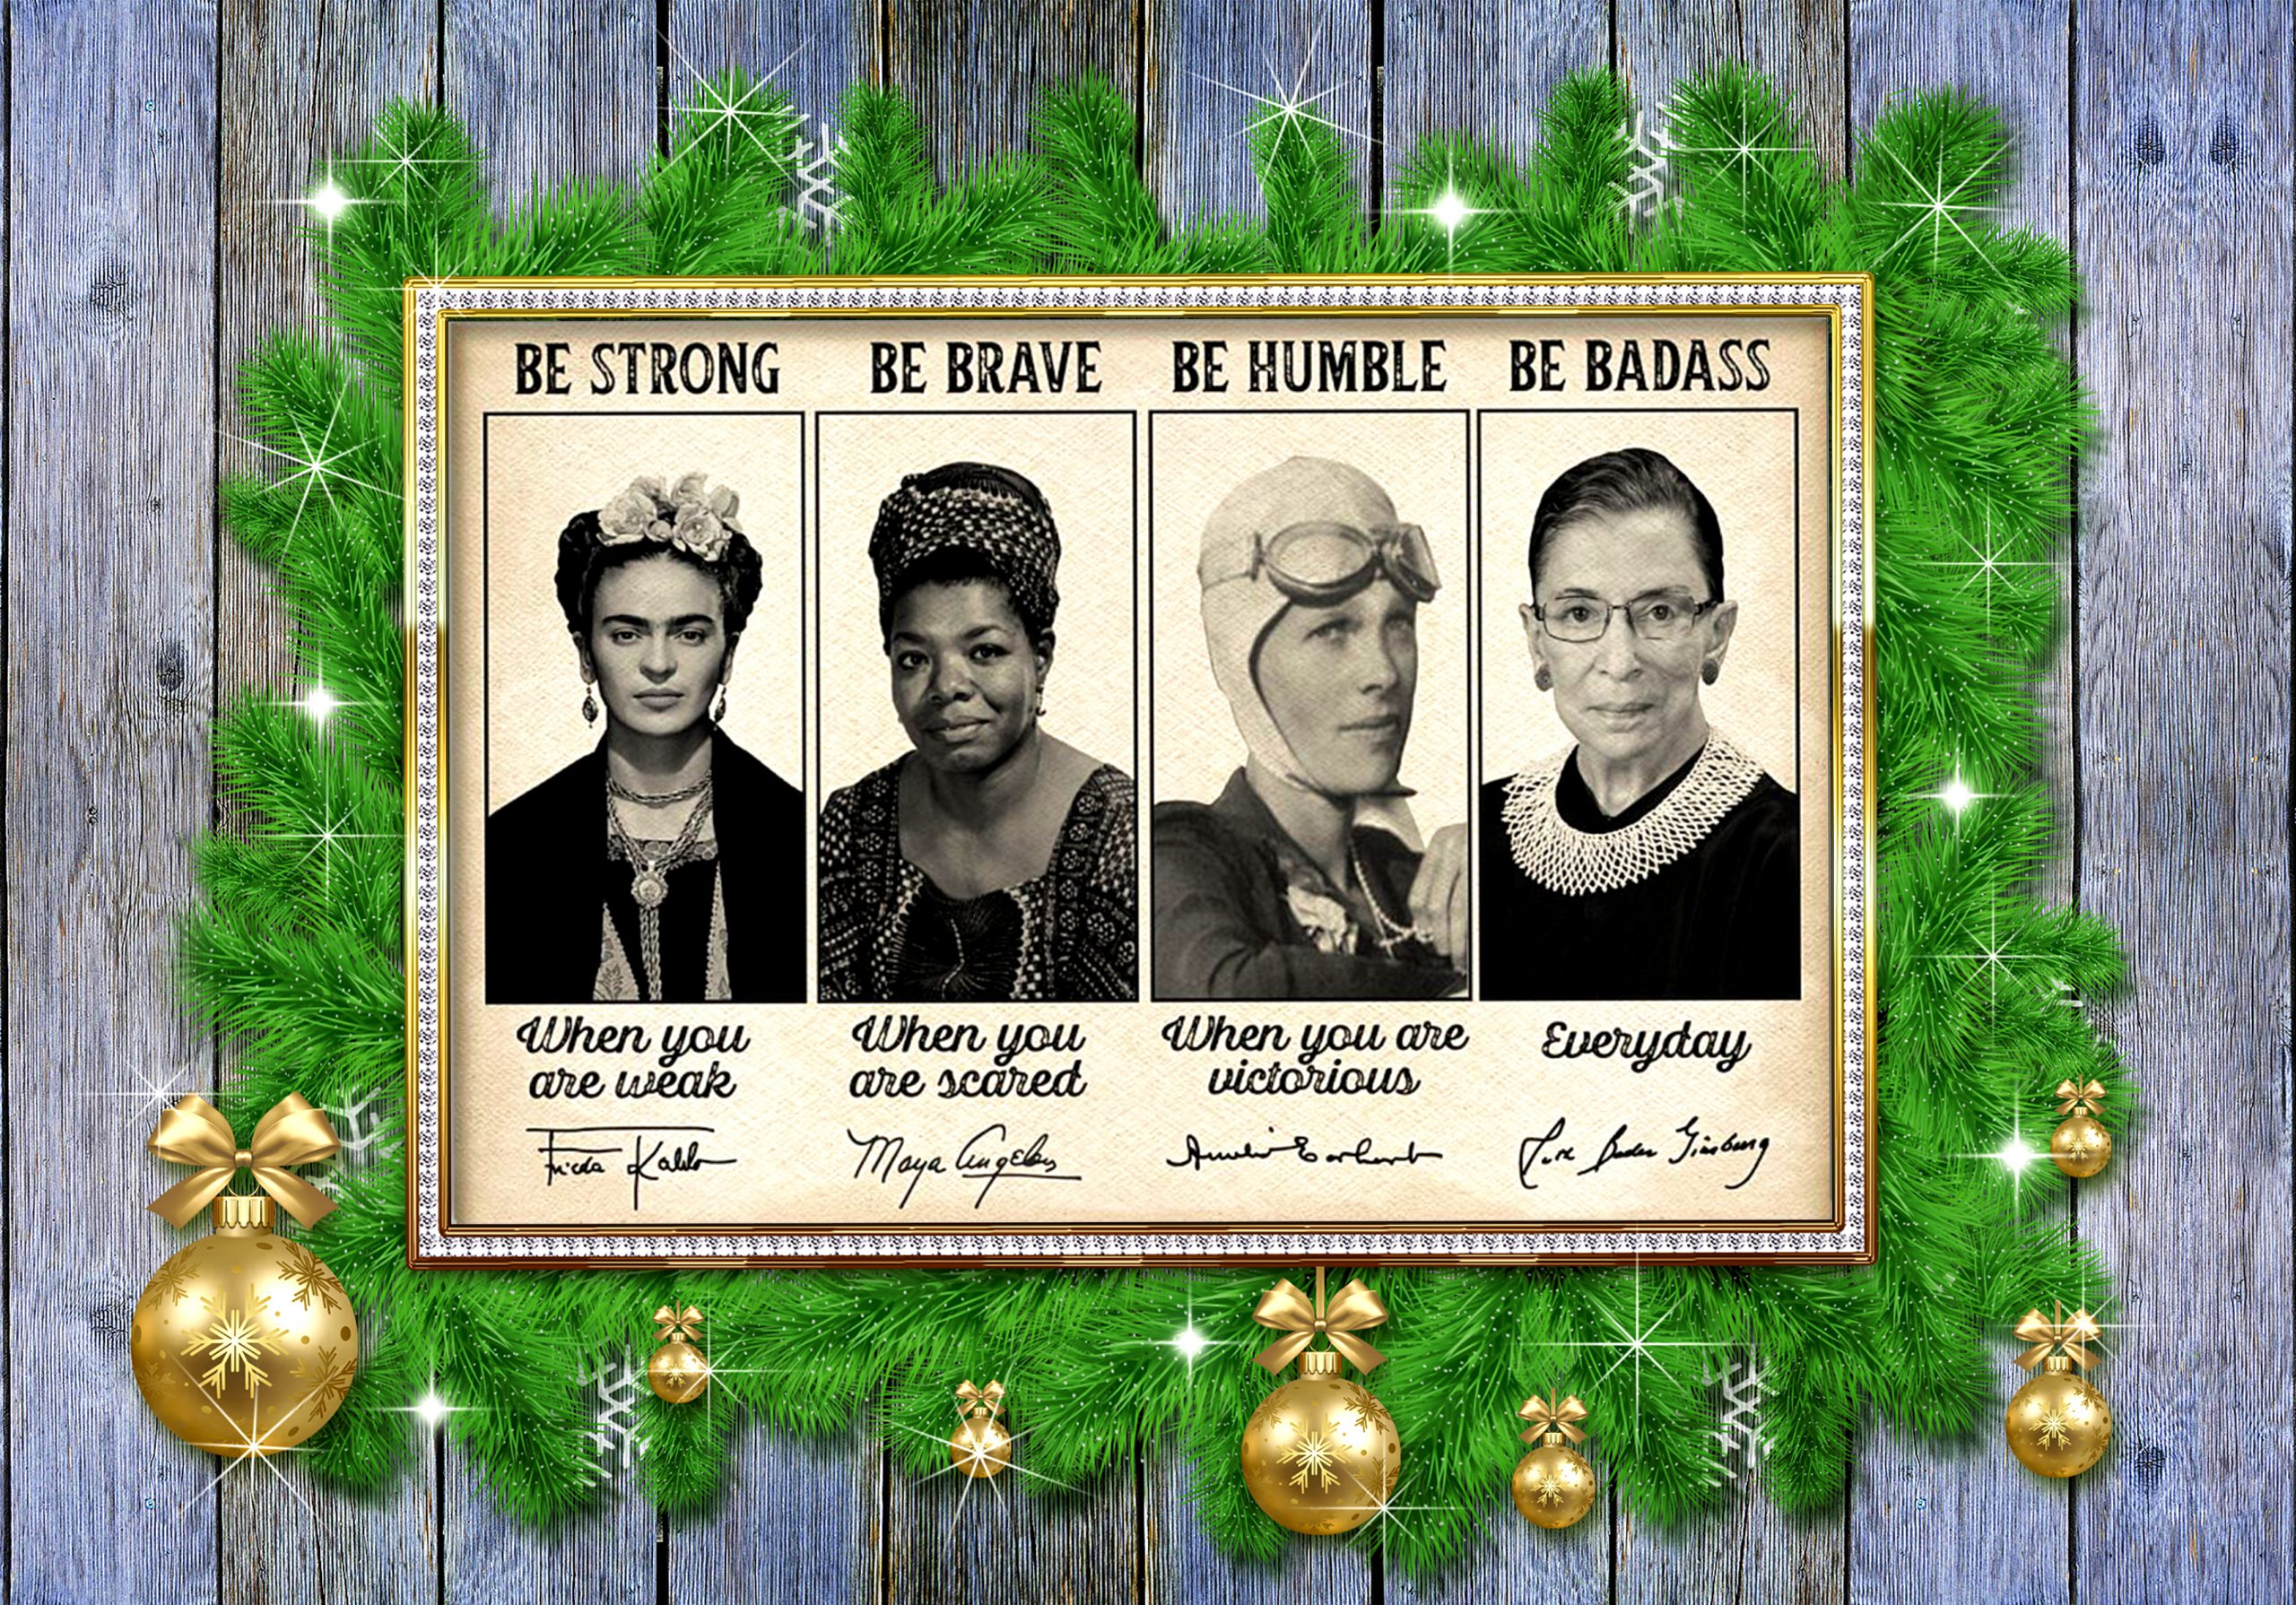 Feminists famous be strong when you are weak signatures poster